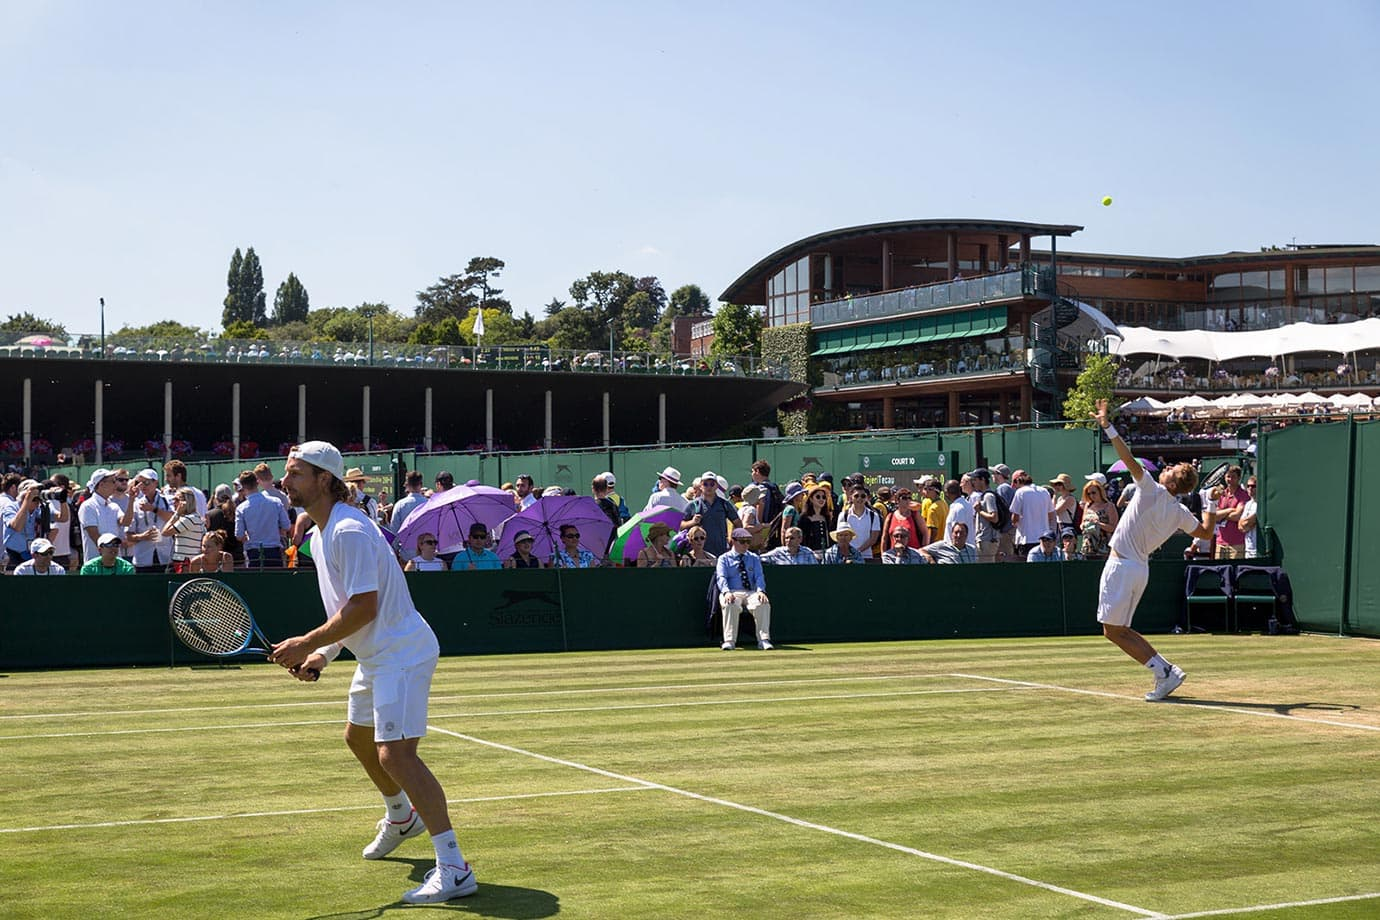 Outer courts at Wimbledon